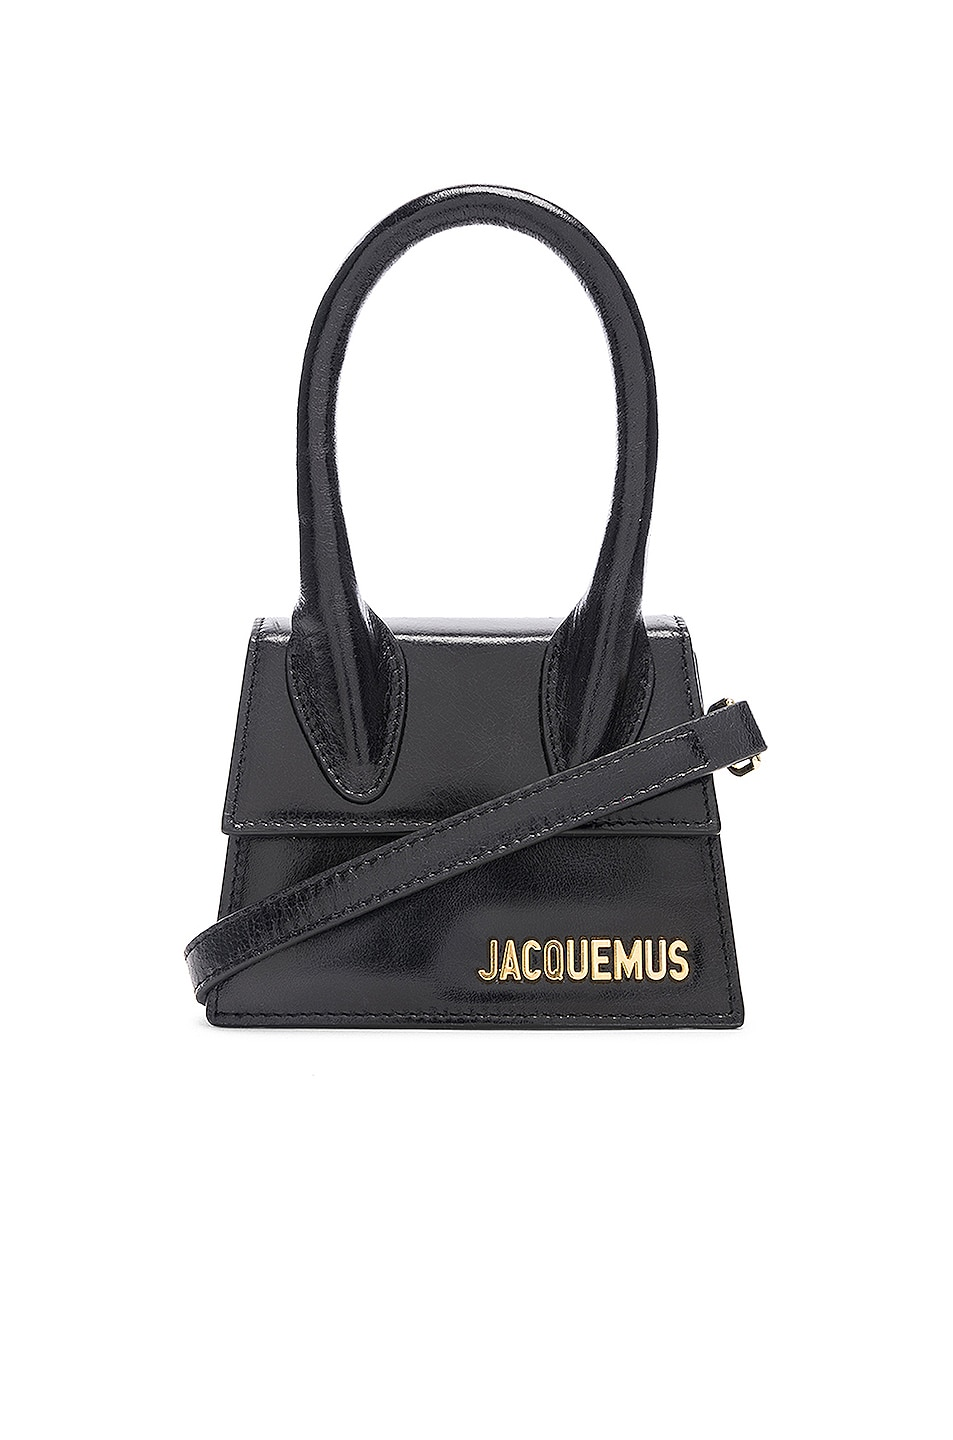 Image 1 of JACQUEMUS Le Sac Chiquito in Black Leather